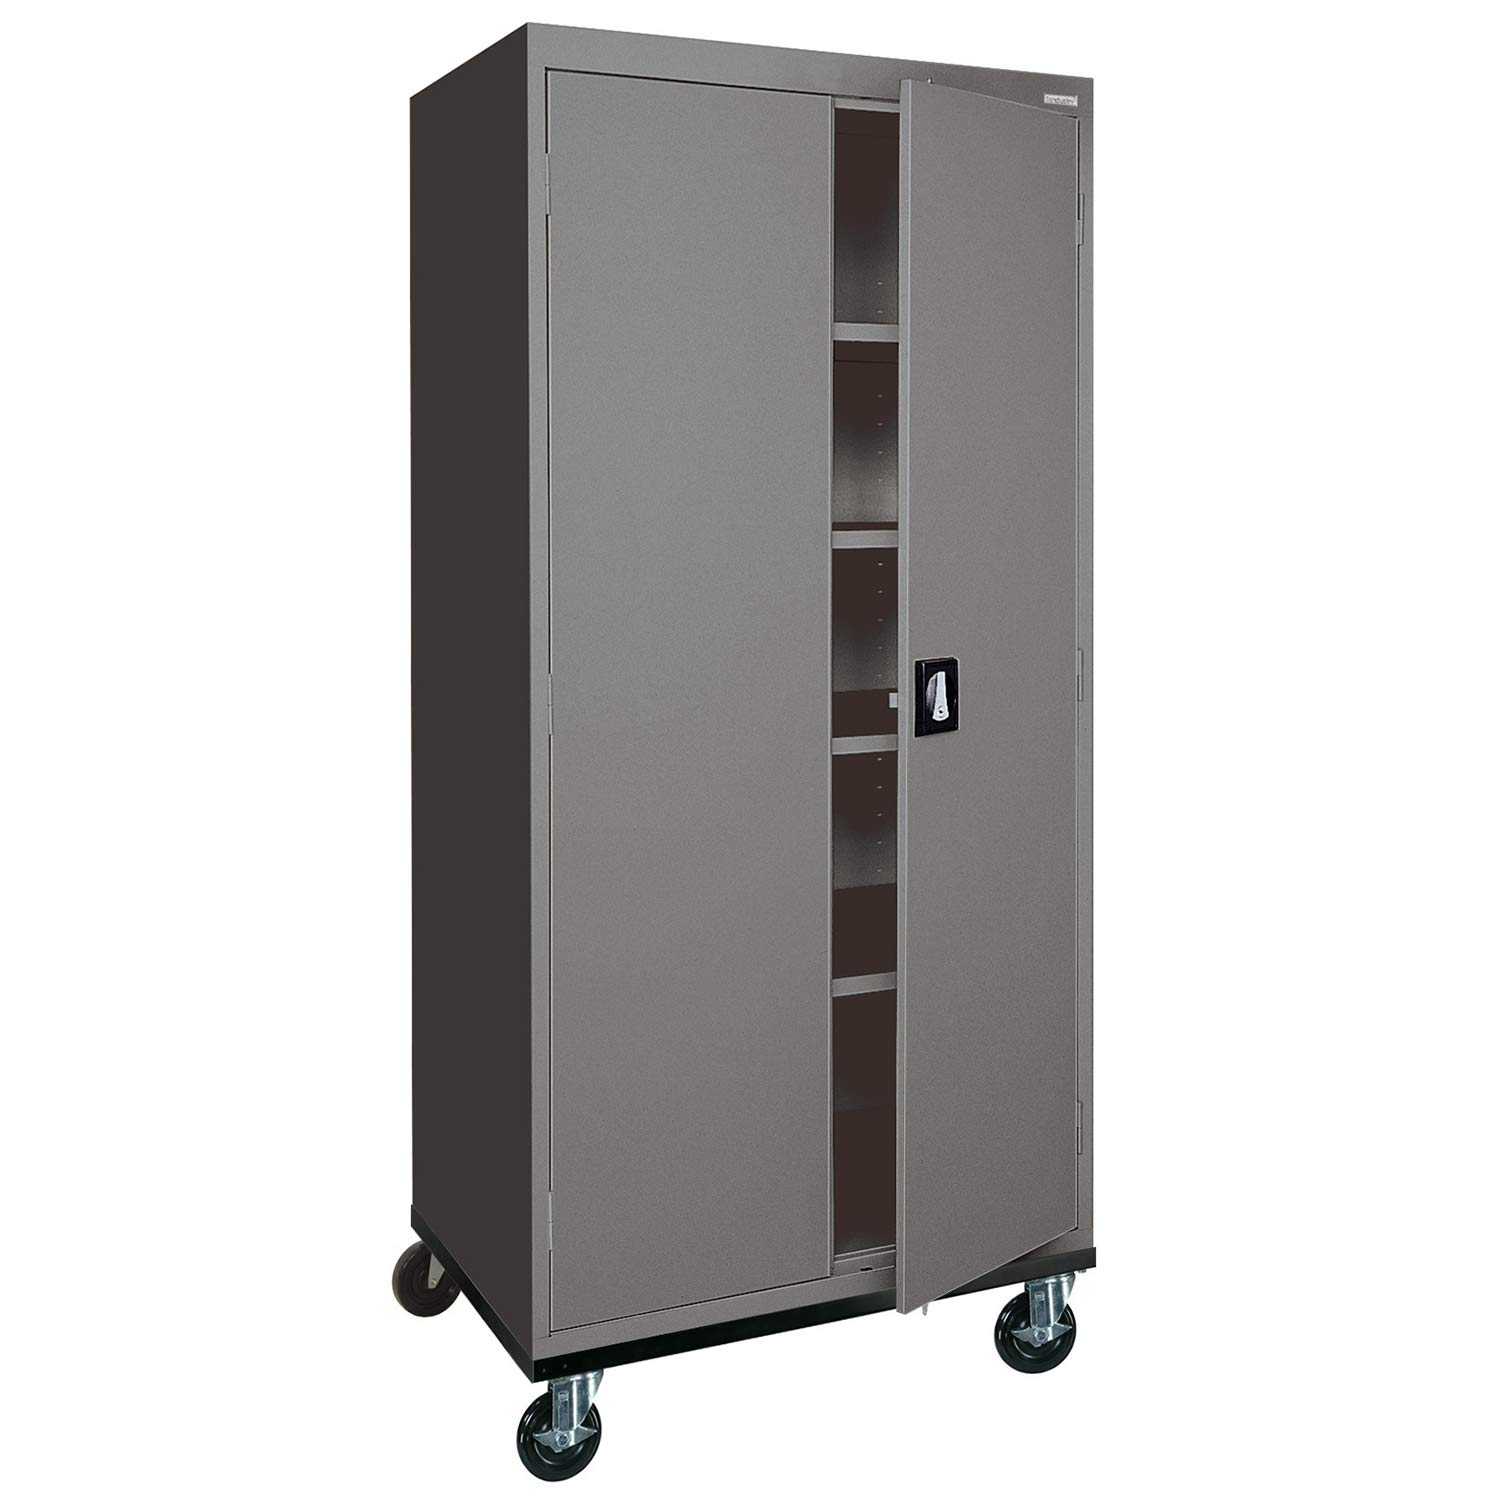 Sandusky Lee TA4R362472-02 Transport Series Mobile Storage Cabinet, Charcoal